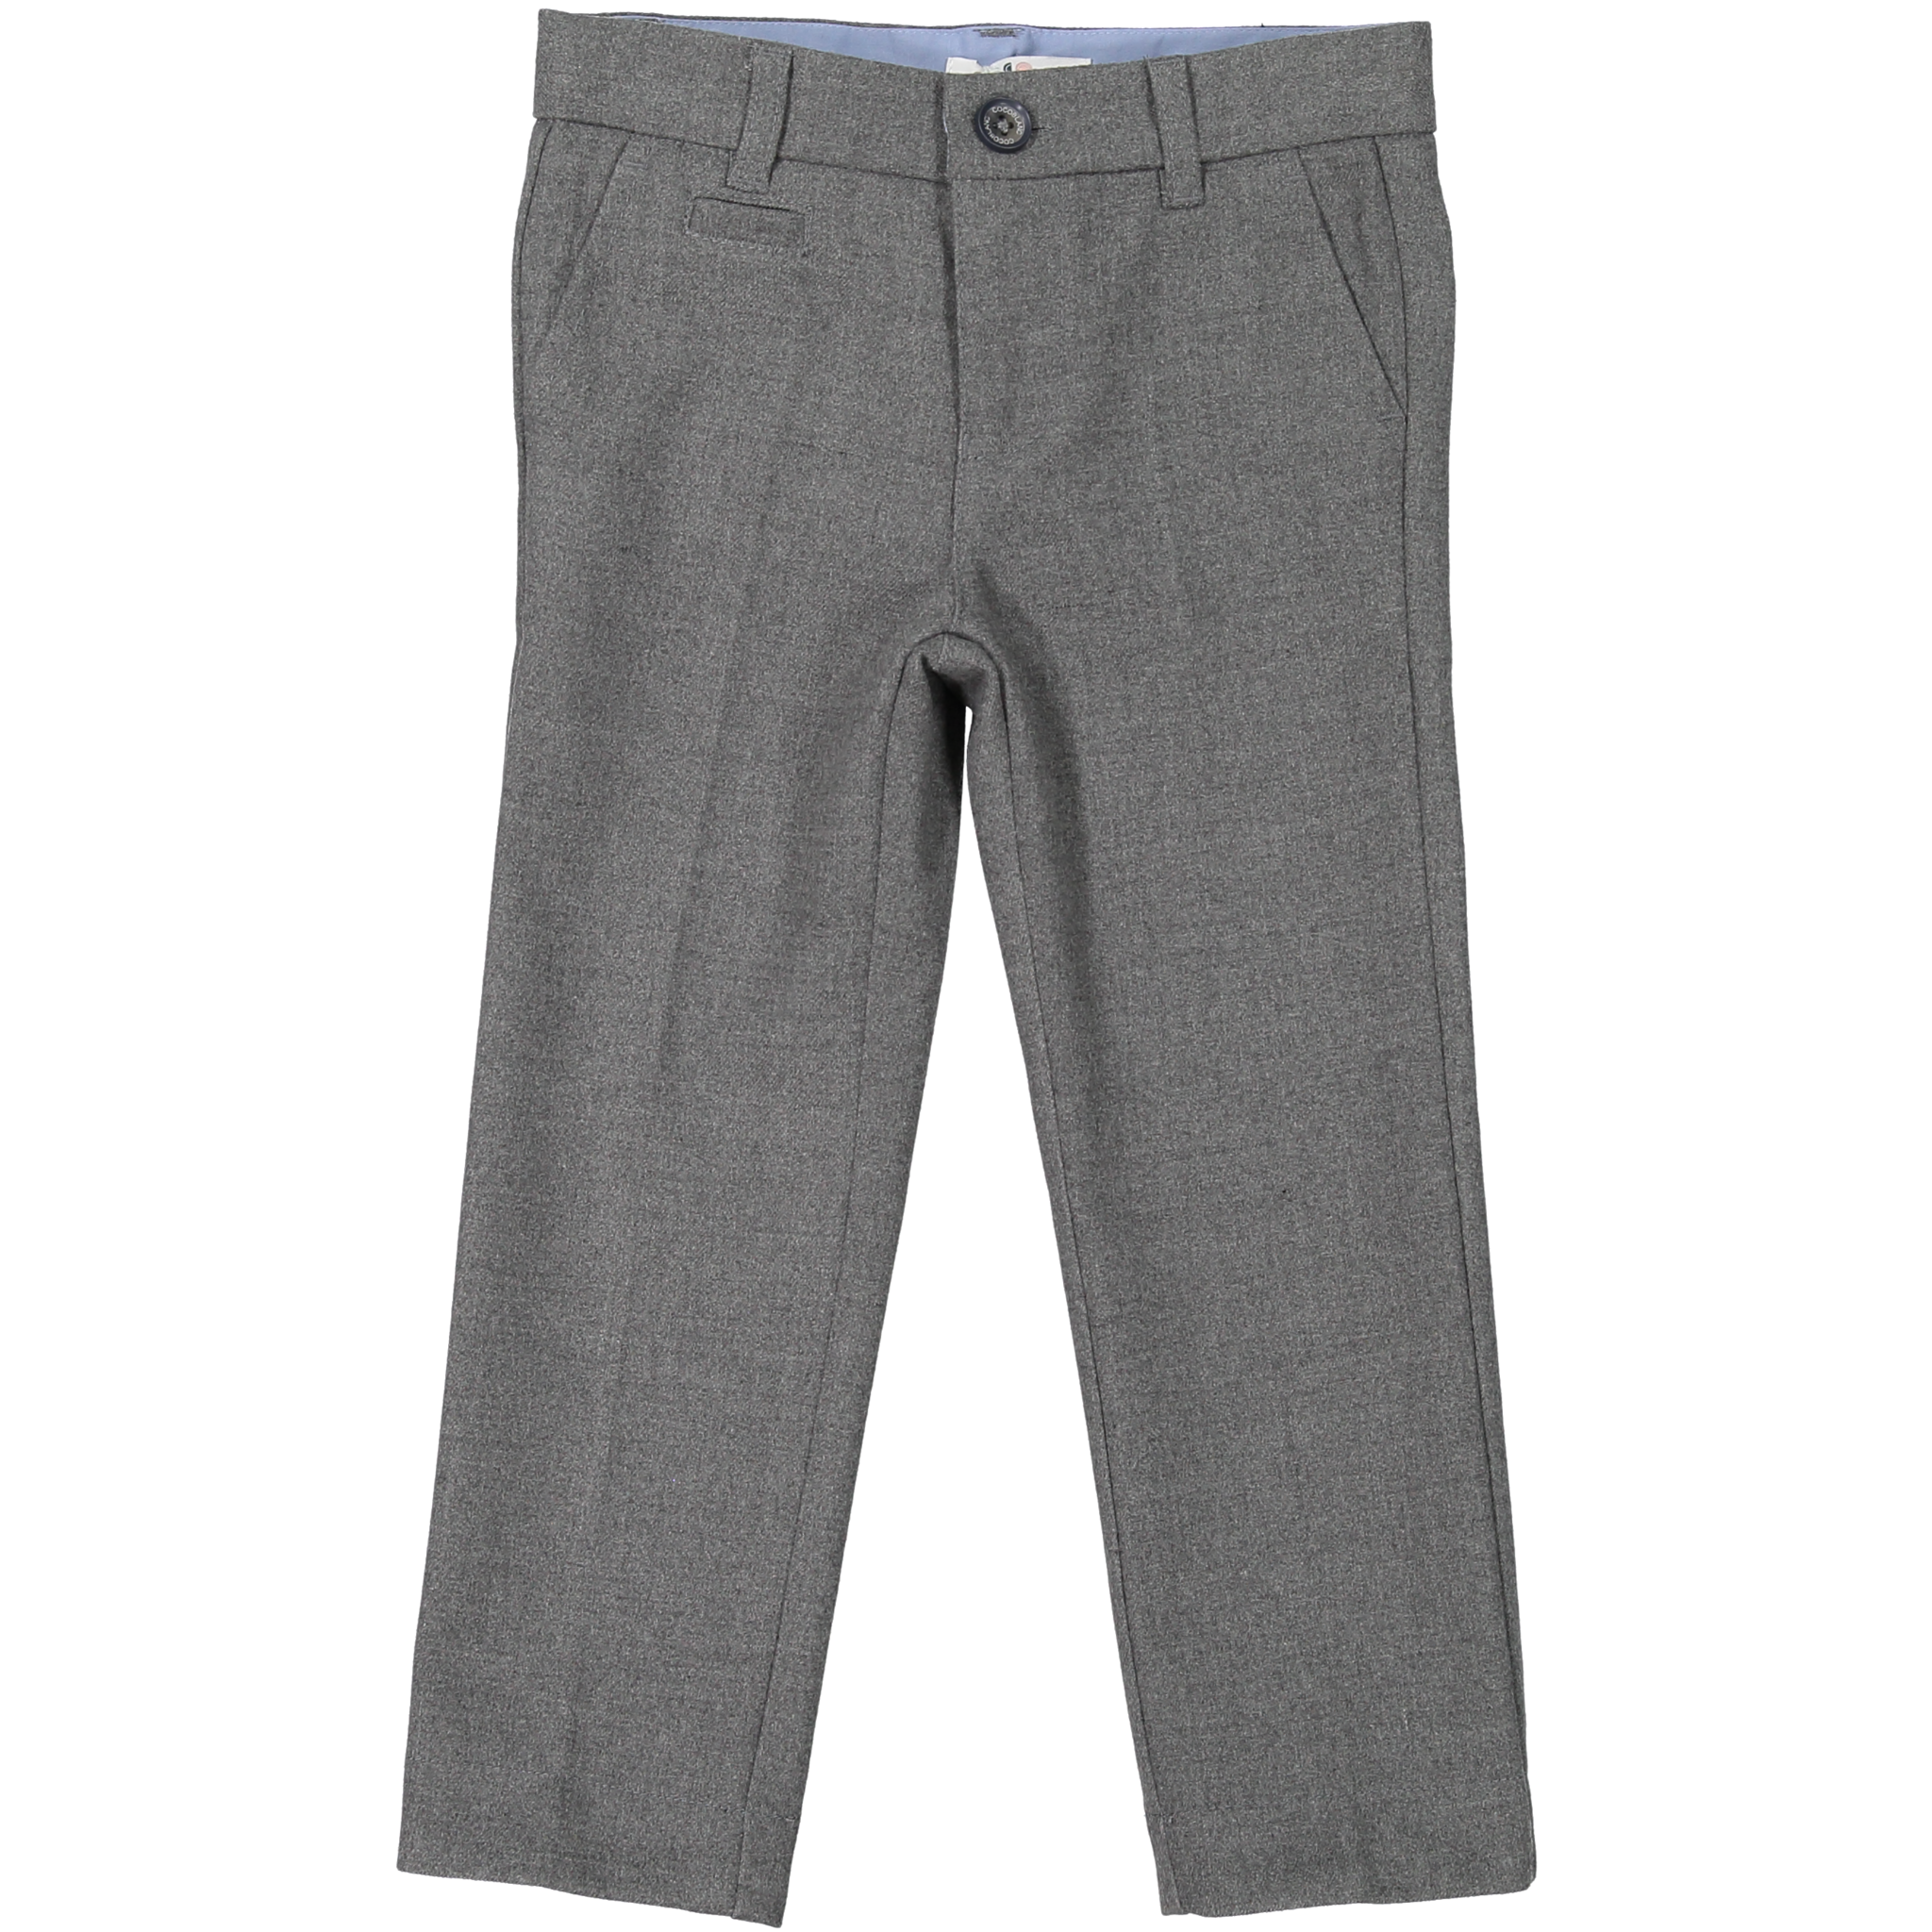 Coco Blanc Light Grey Heather Wool Pants